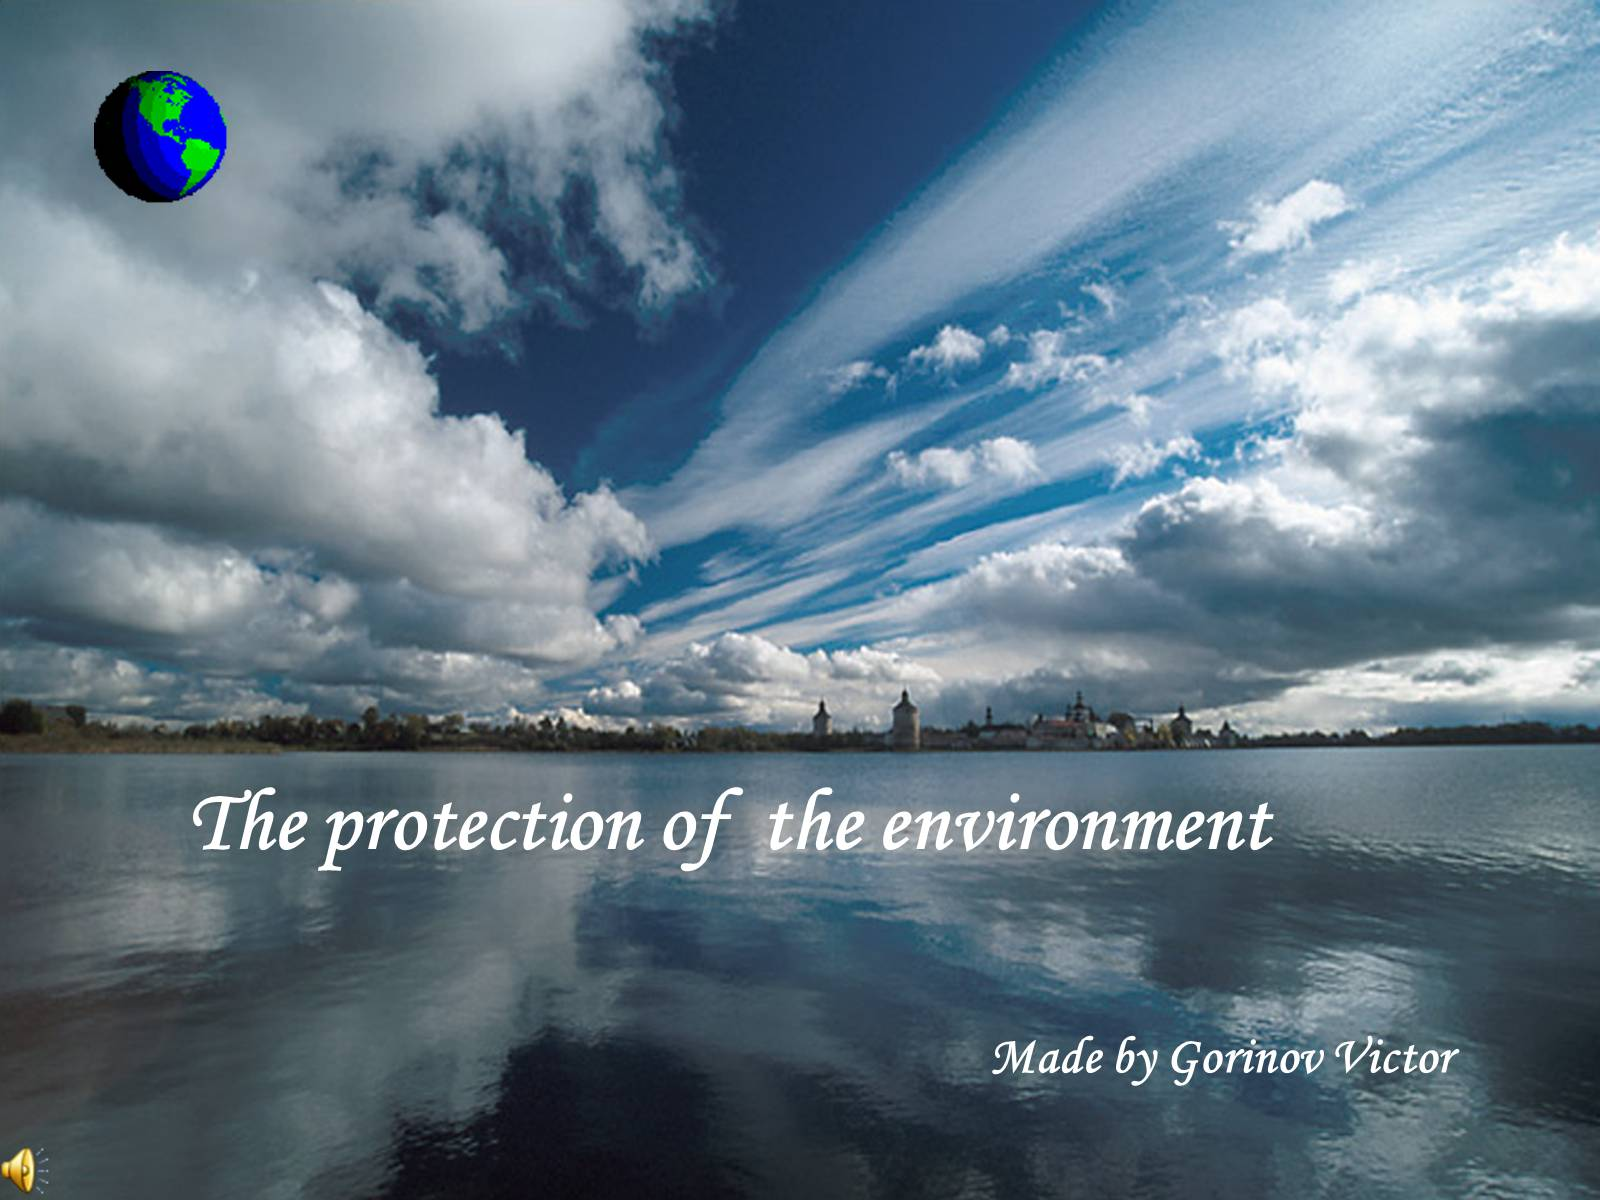 Презентація на тему «The protection of the environment»